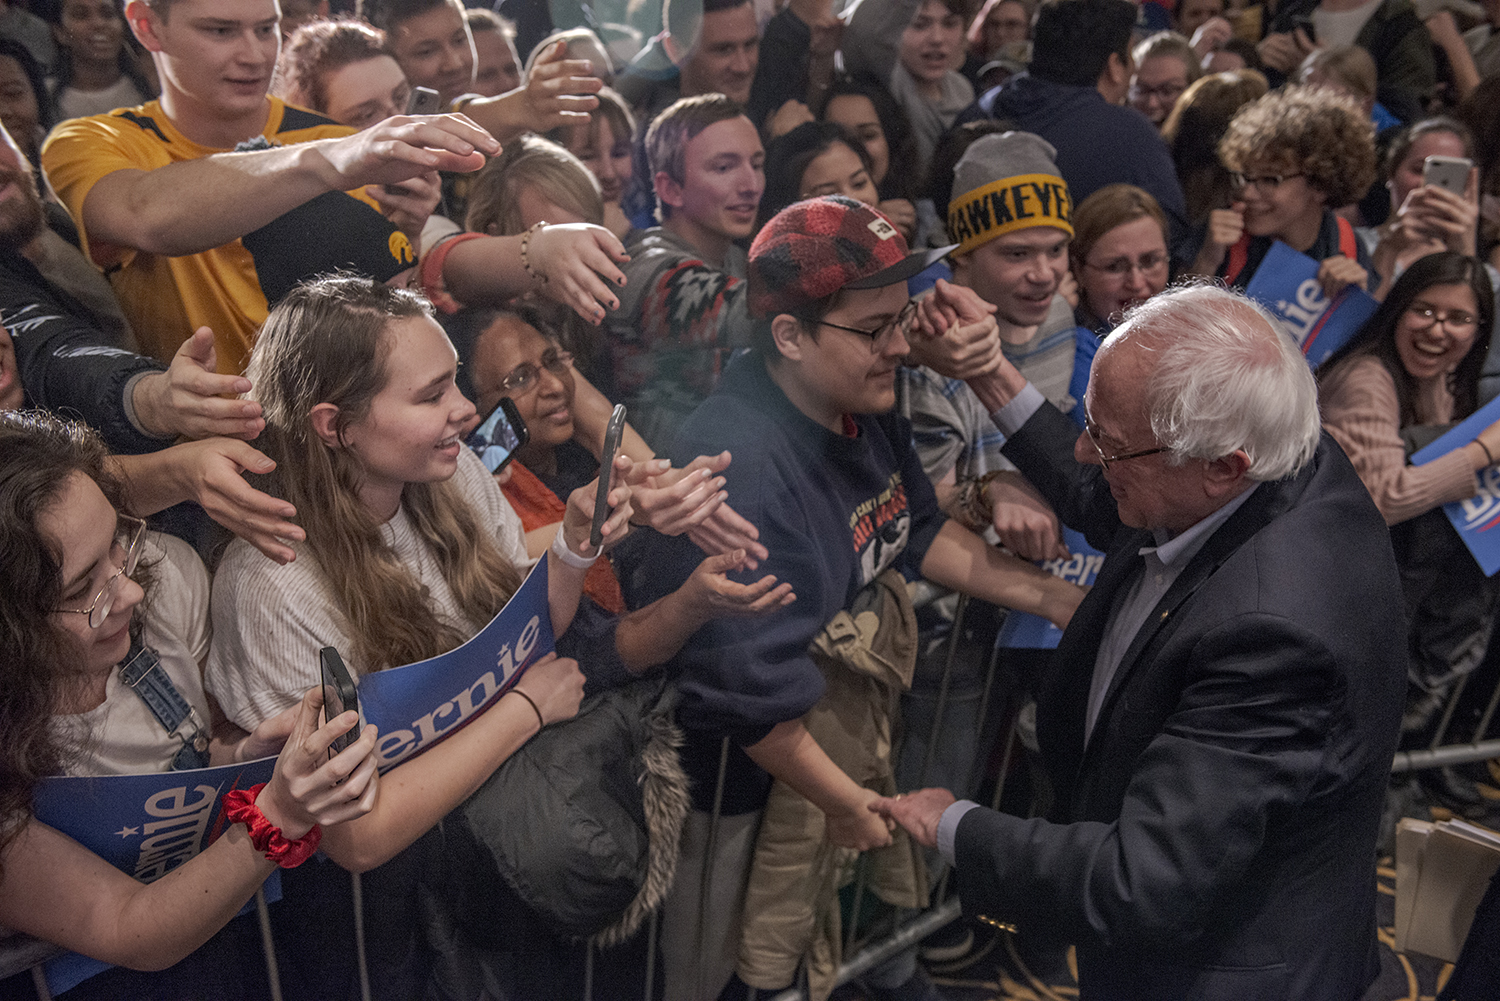 Sen. Bernie Sanders, I-Vt., greets supporters during a campaign rally at the Iowa Memorial Union on Friday, March 8, 2019. The rally was a part of Sen. Sanders' first trip to Iowa since announcing his 2020 presidential bid.